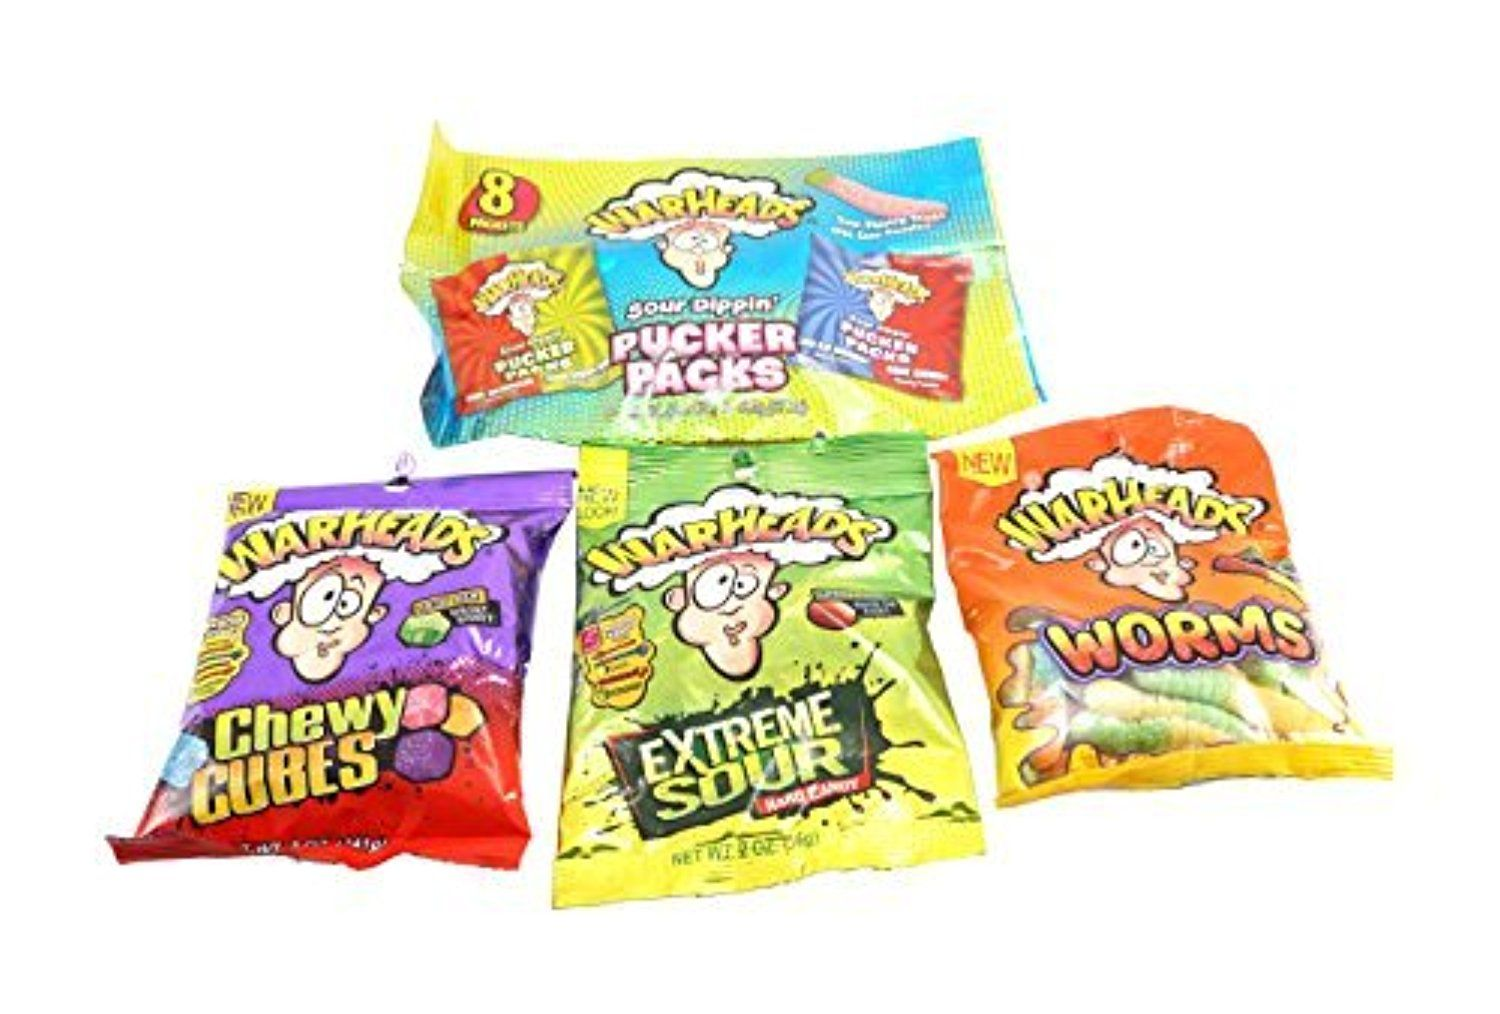 Warhheads Pucker Packs Extreme Sour Worms Chewy Cubes Candy 4pk By Warheads Awesome Products Selected By Anna Churchill Chewy Worms Gourmet Recipes